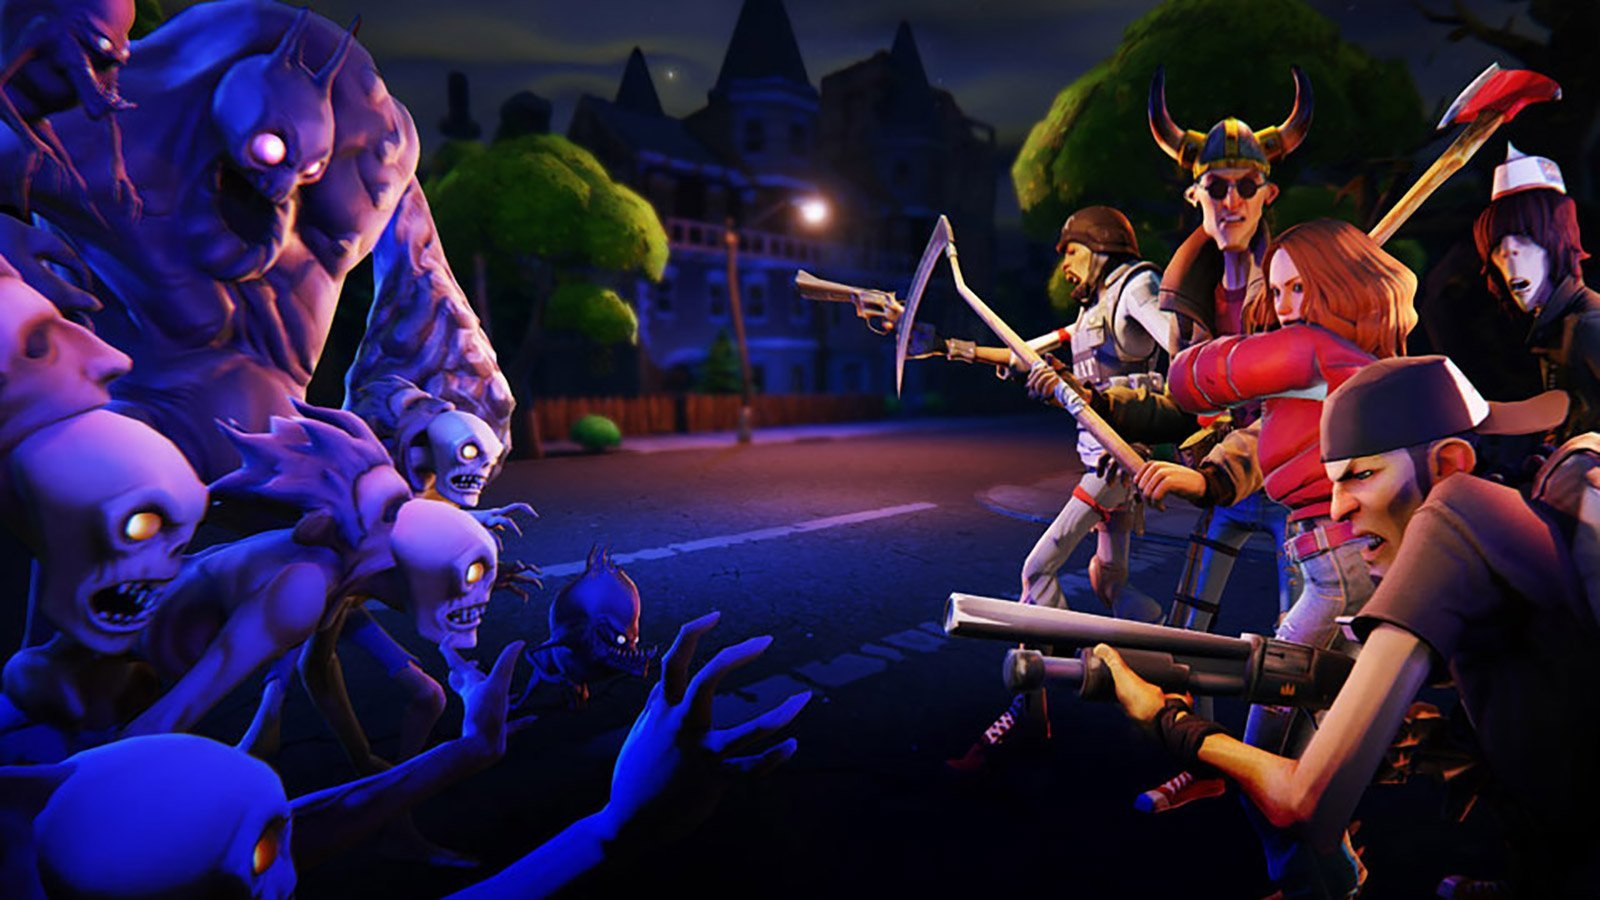 This Fortnite scam could hold your computer files ransom. Here's how